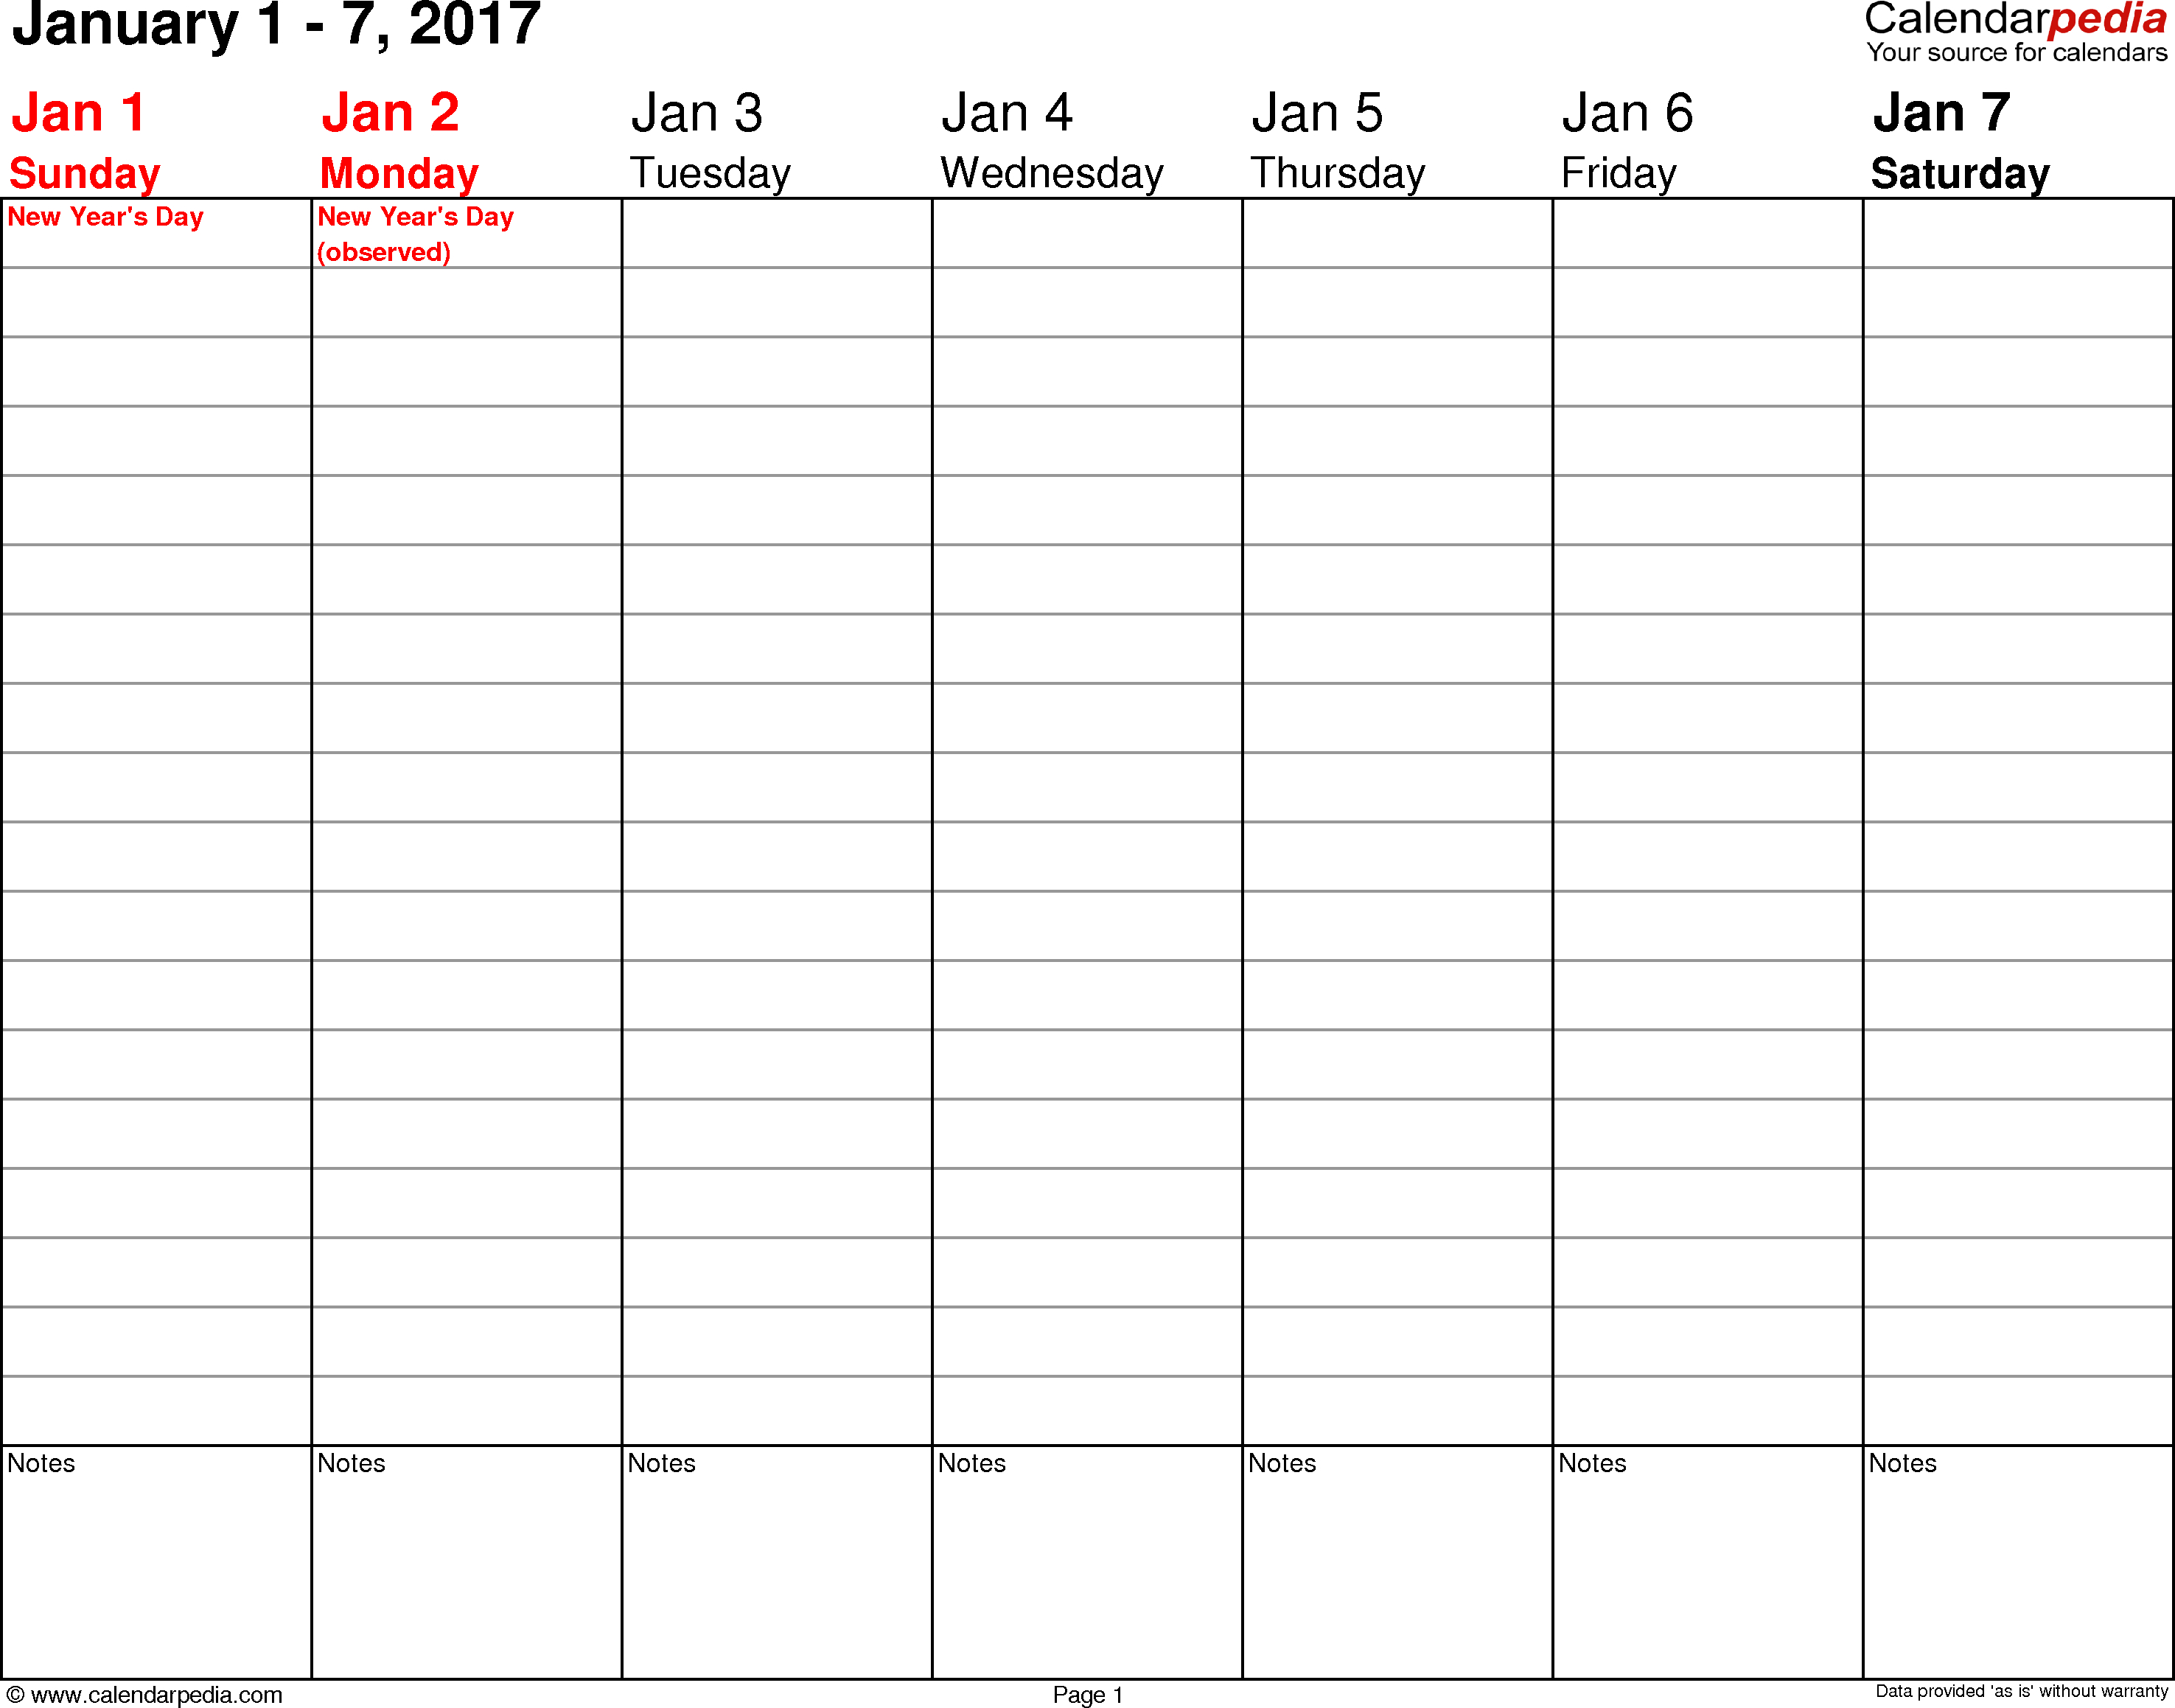 Weekly Calendar 2017 For Word - 12 Free Printable Templates - Free Printable Weekly Planner 2017